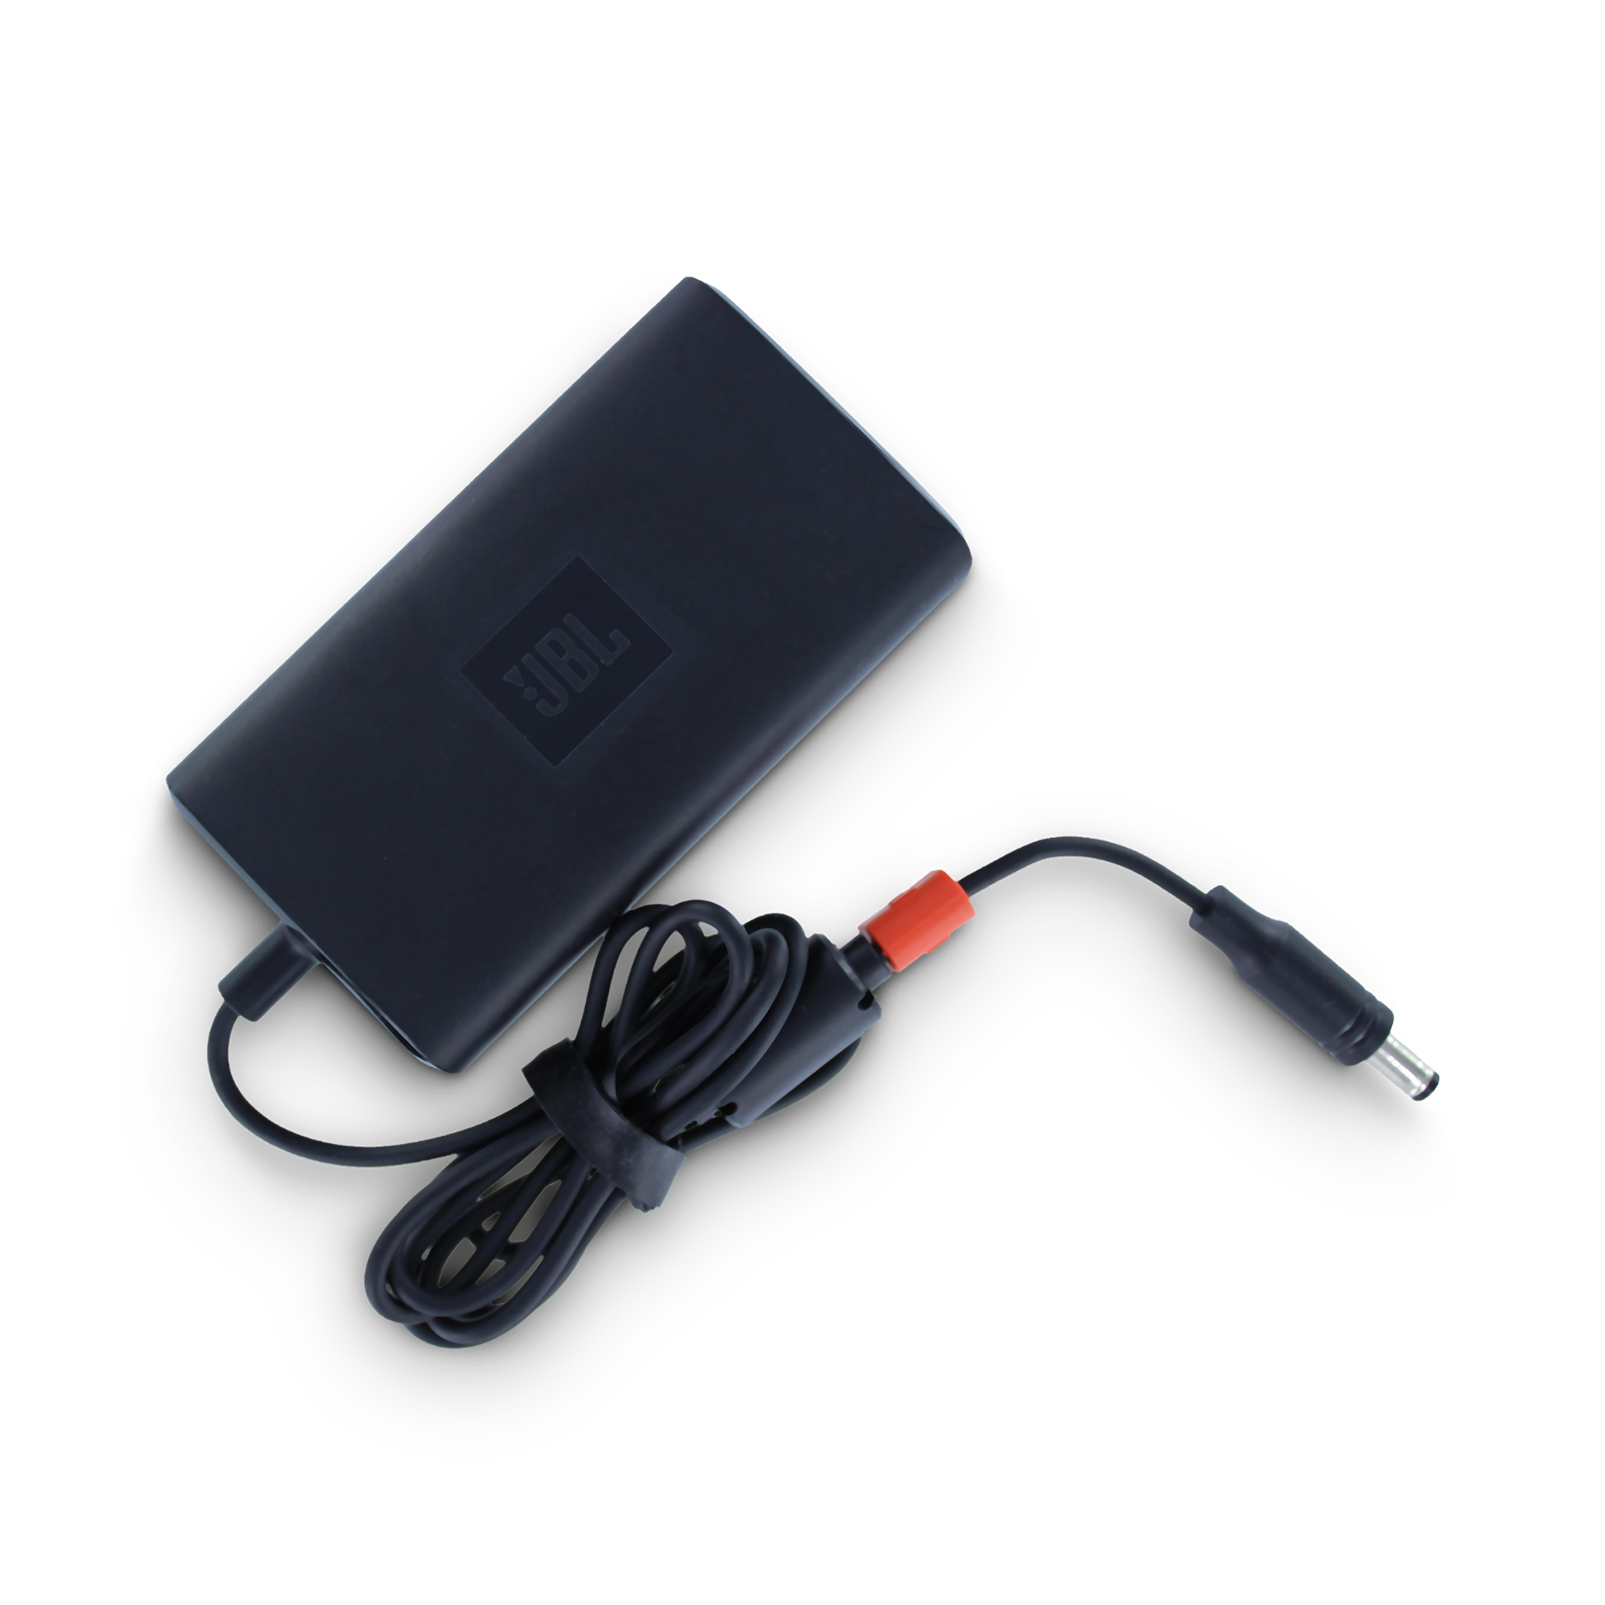 Power adapter for Xtreme 2